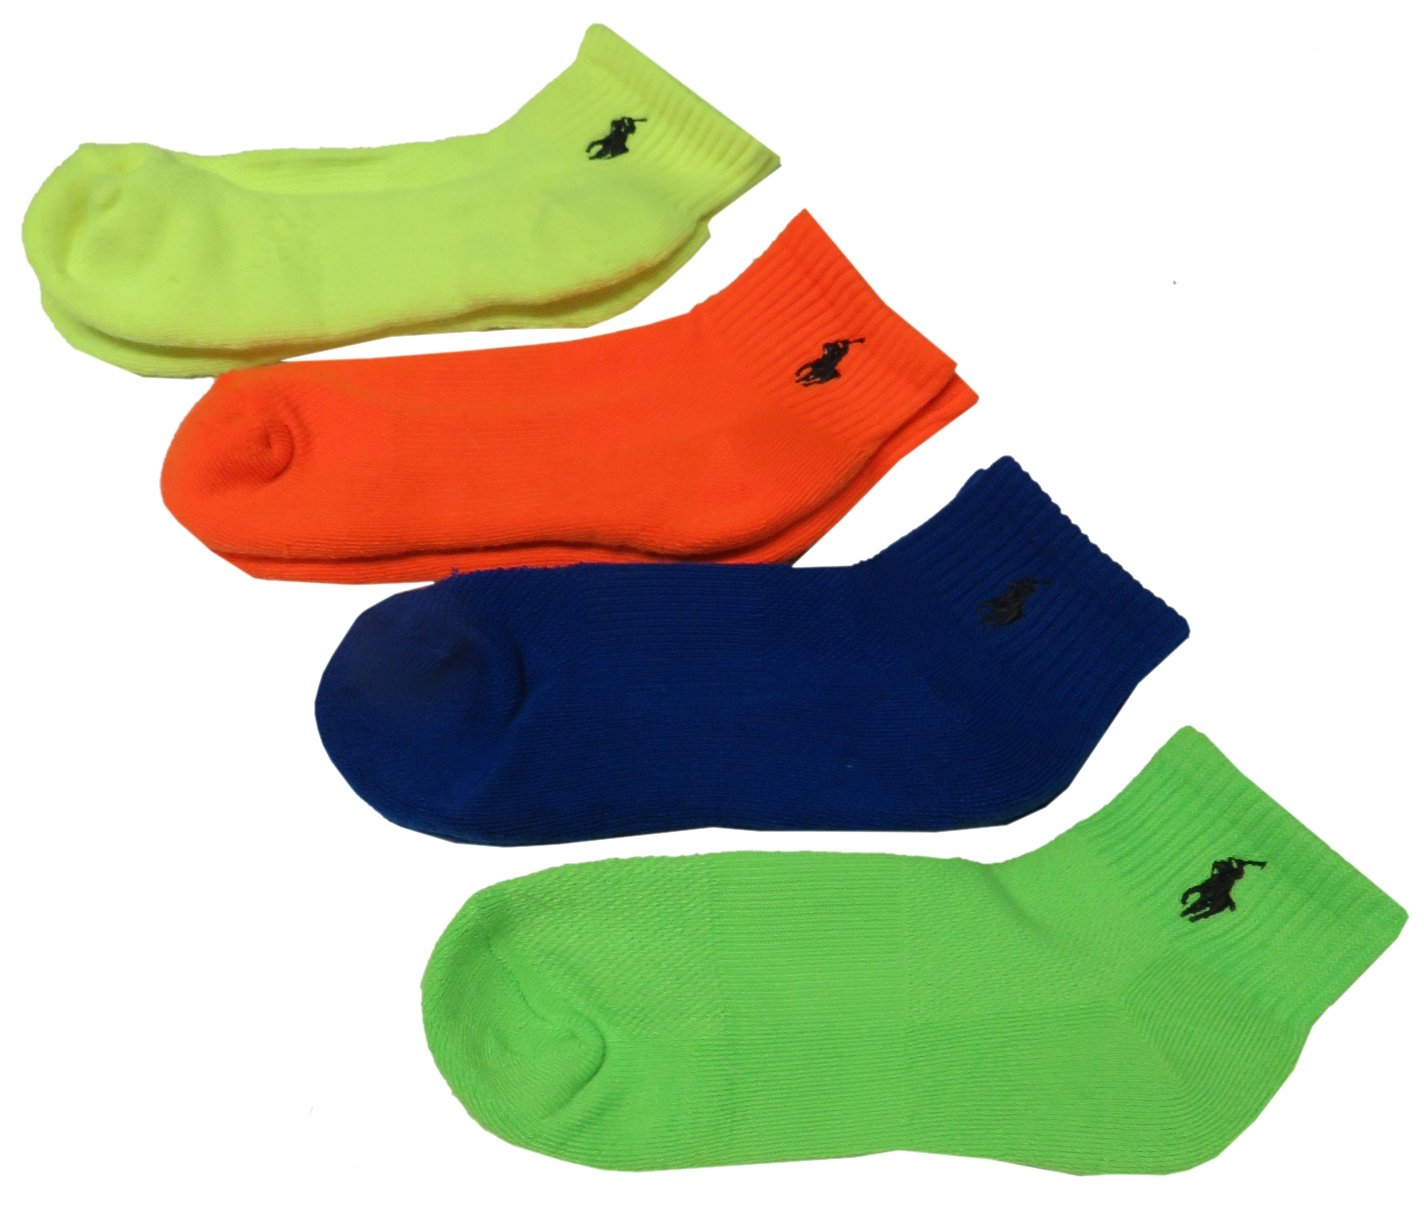 Polo Ralph Lauren Boy's Socks, 4-Pack No-Show Liner Socks Size 4-7